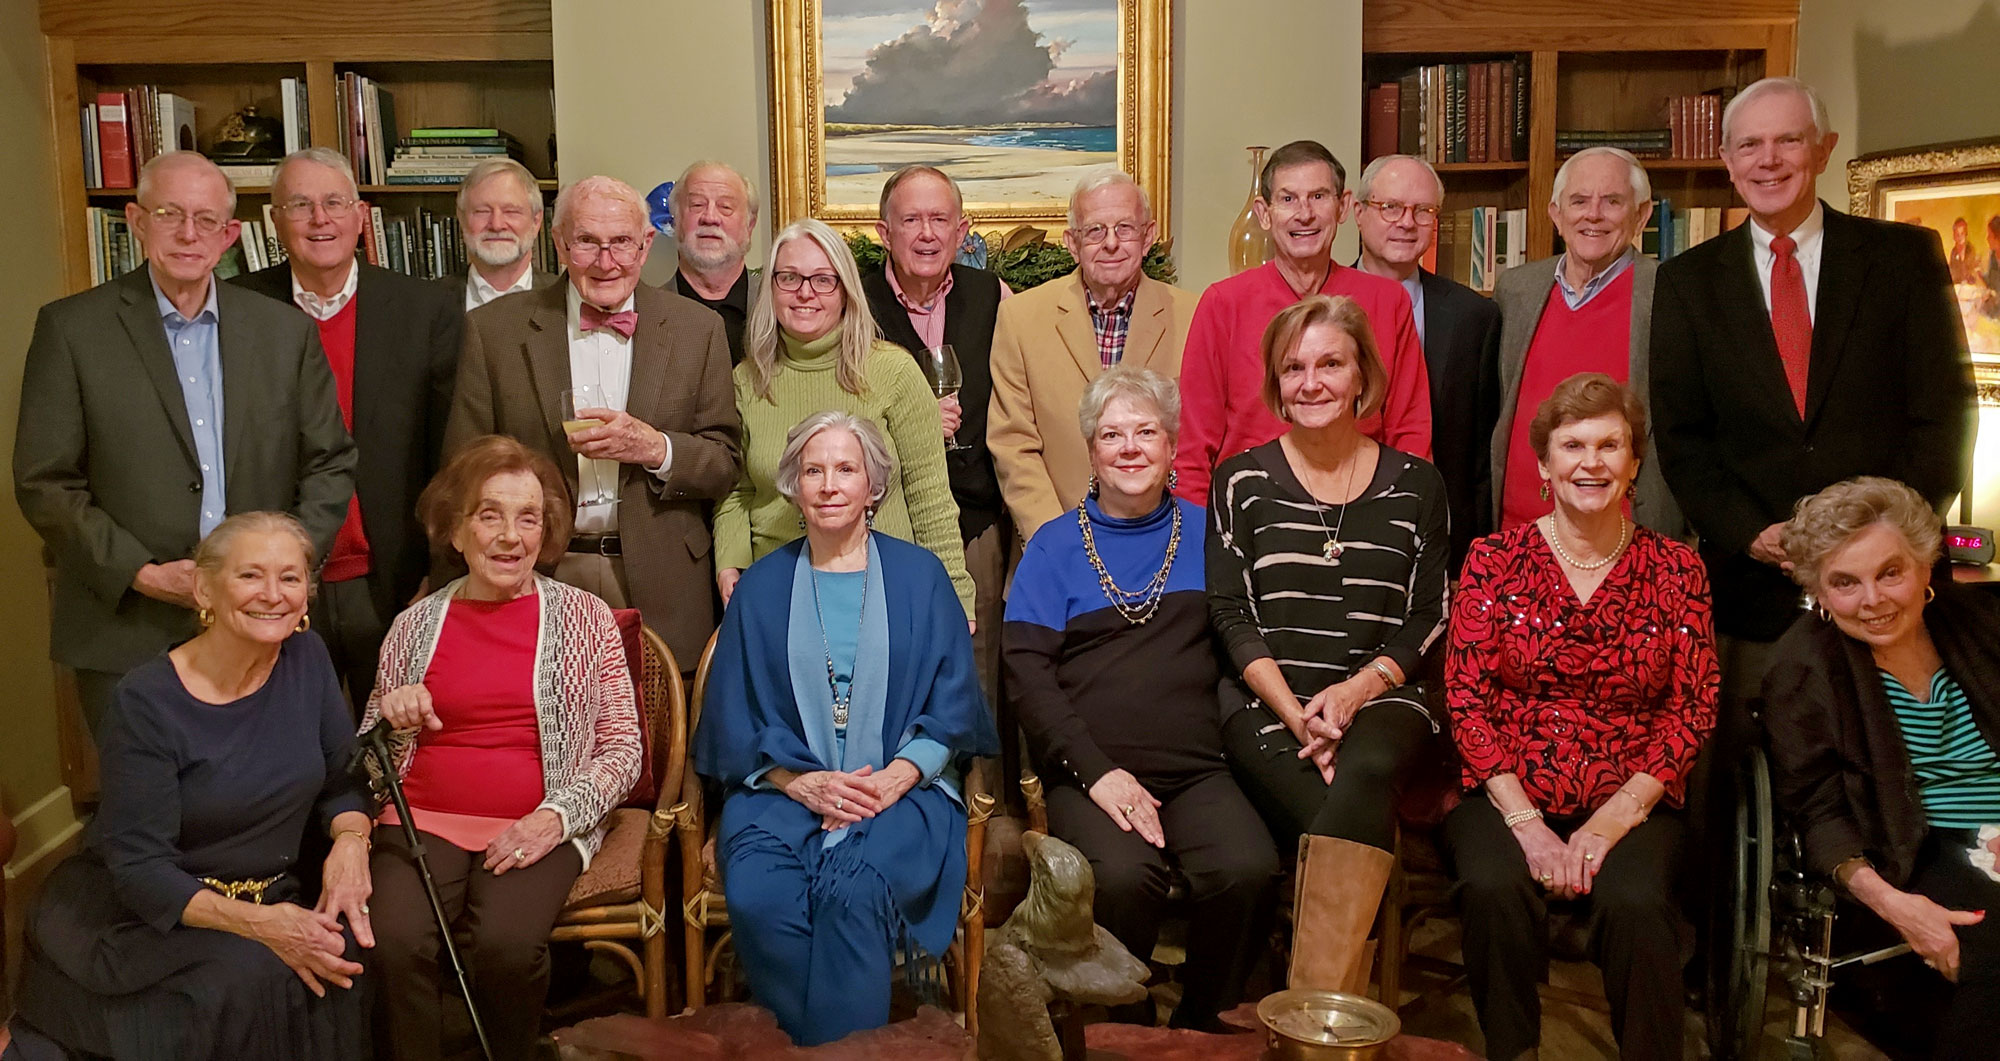 MCHS Board of Directors